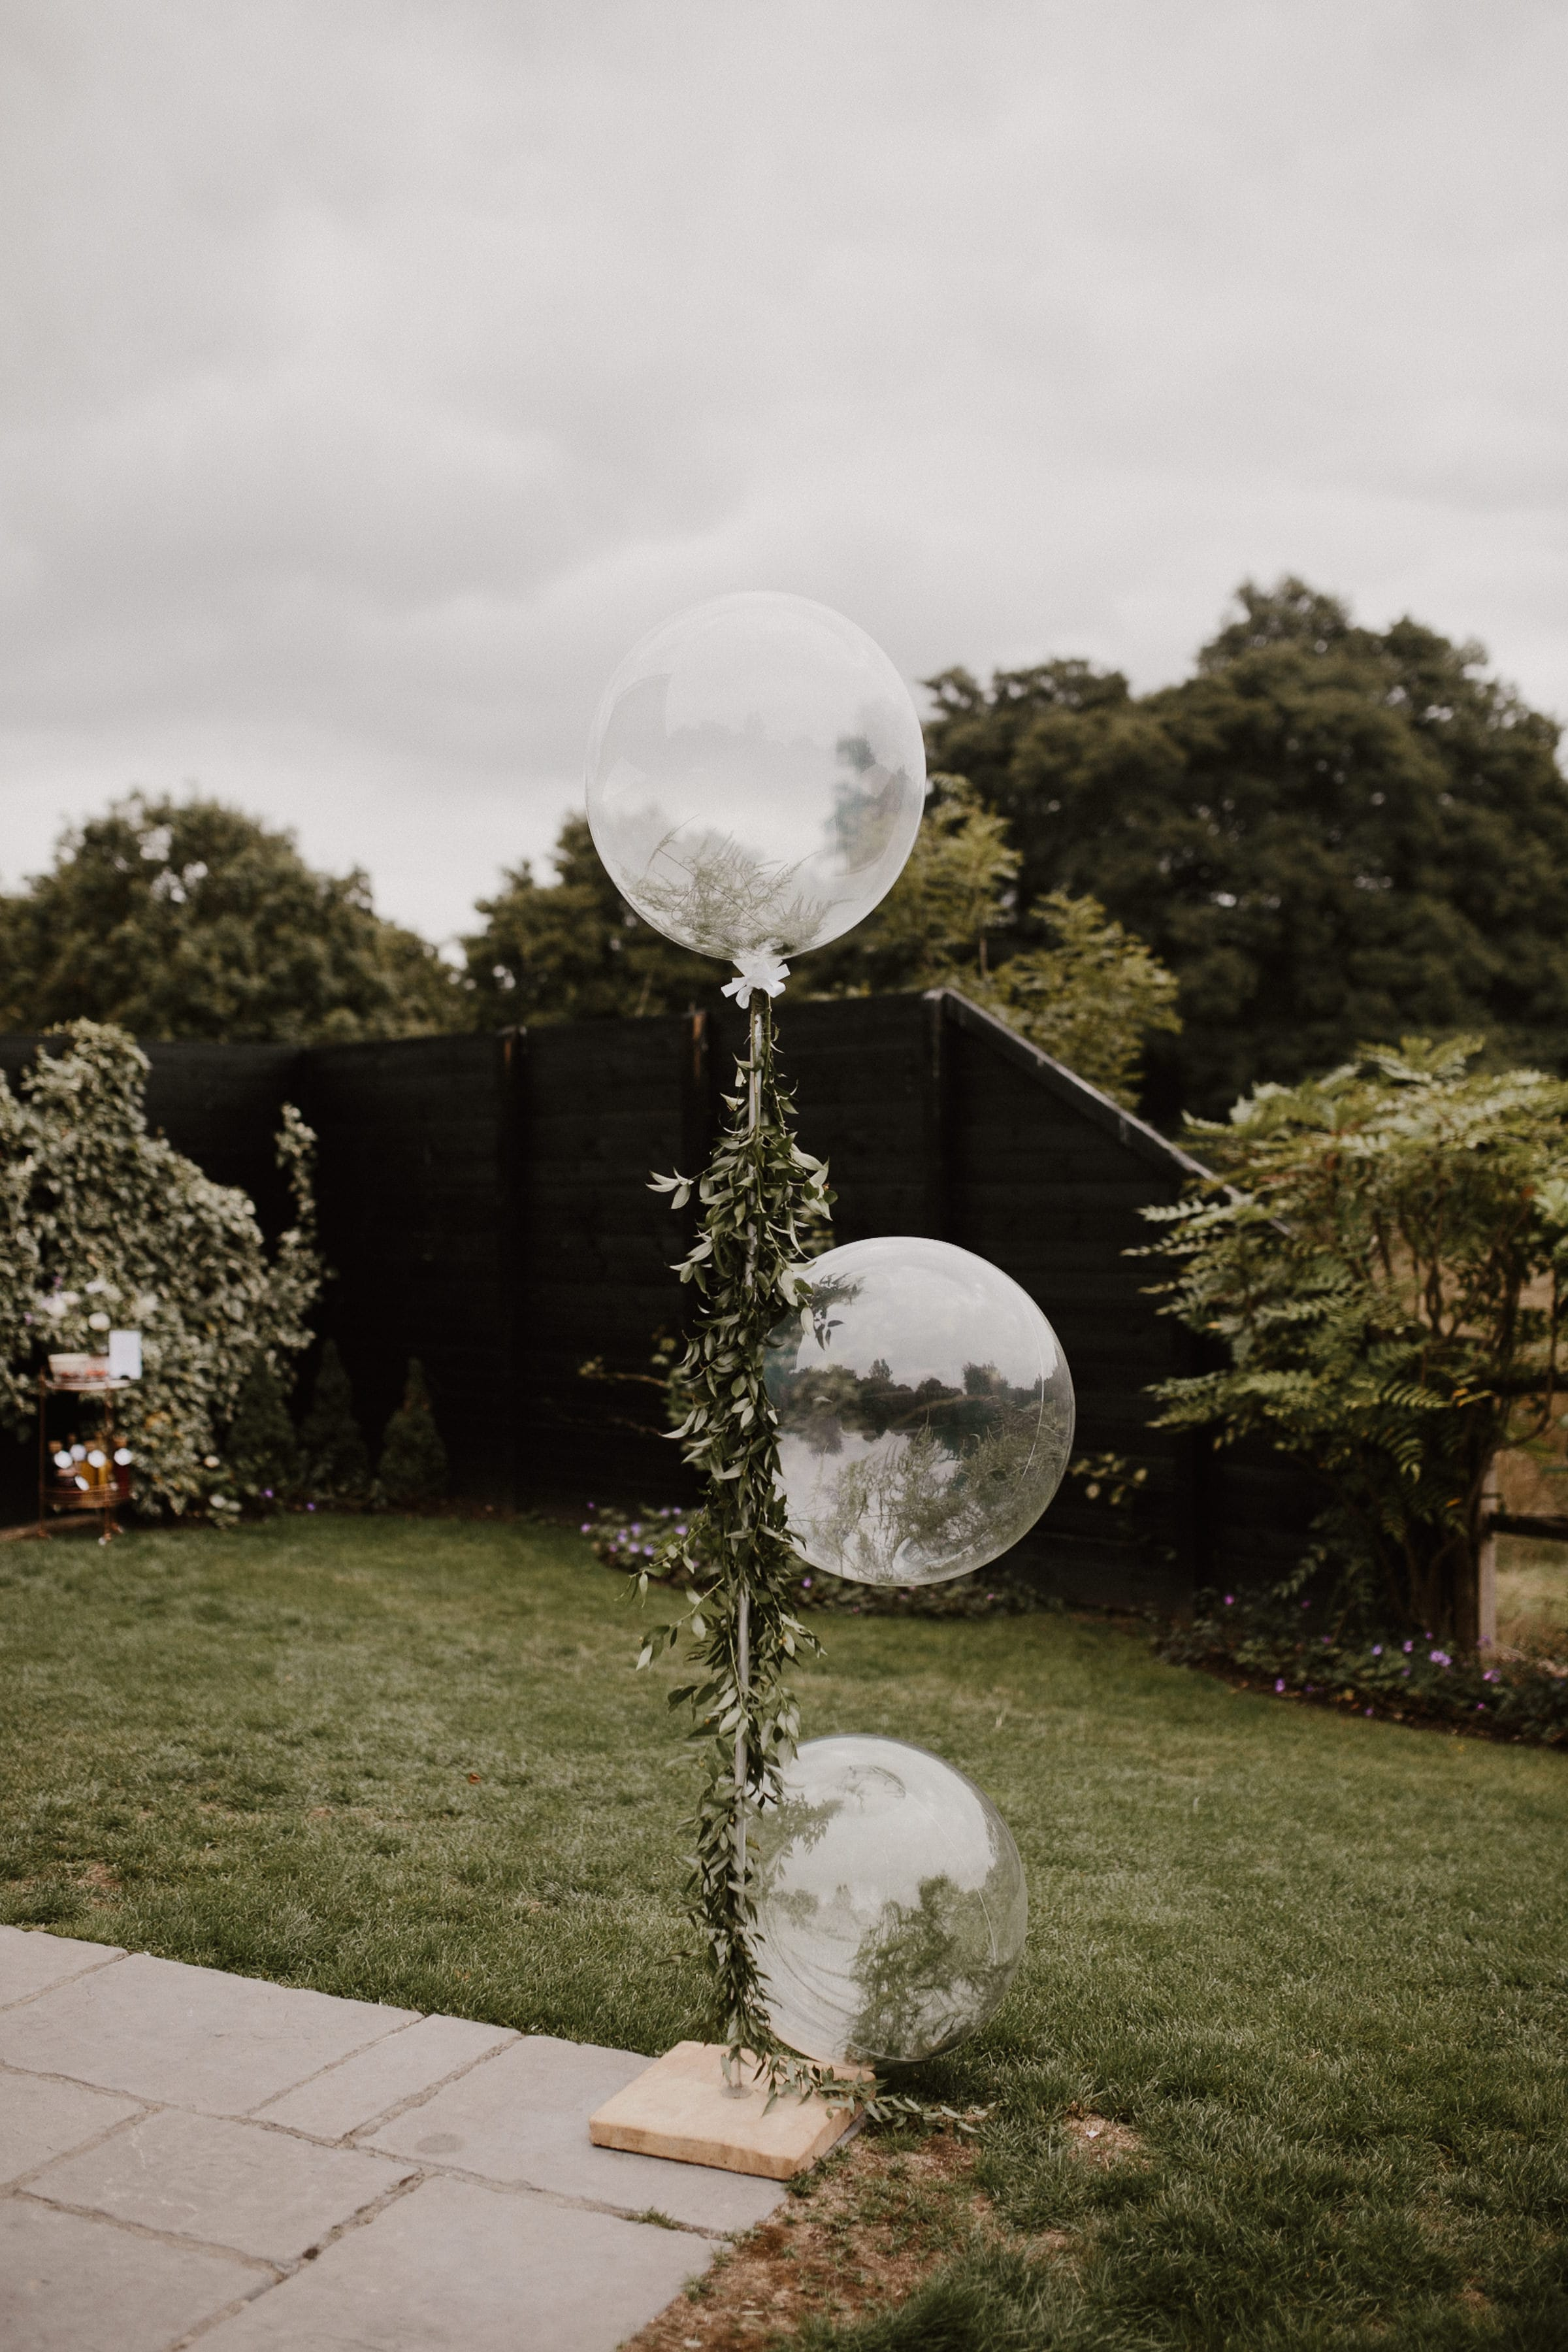 Nat and Tom - 01 - Venue and Details - Sara Lincoln Photography-34-min.jpg